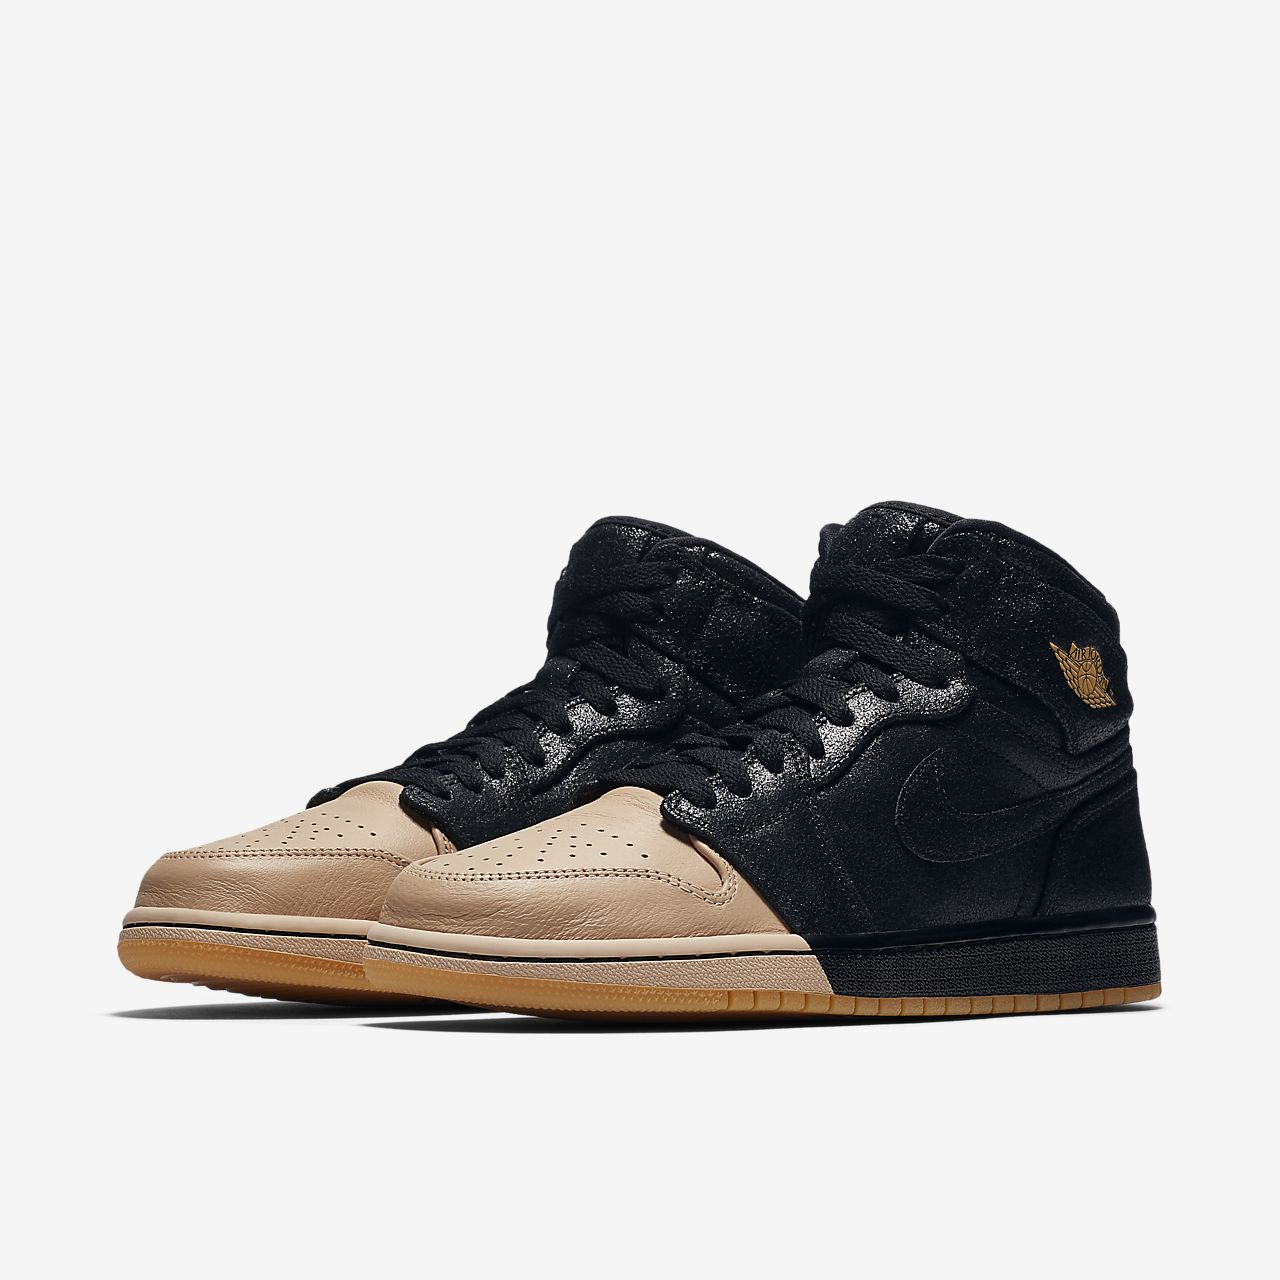 fe0055038fe986 Nike Air Jordan 1 Retro High Premium Women s Shoe. Nike.com AU